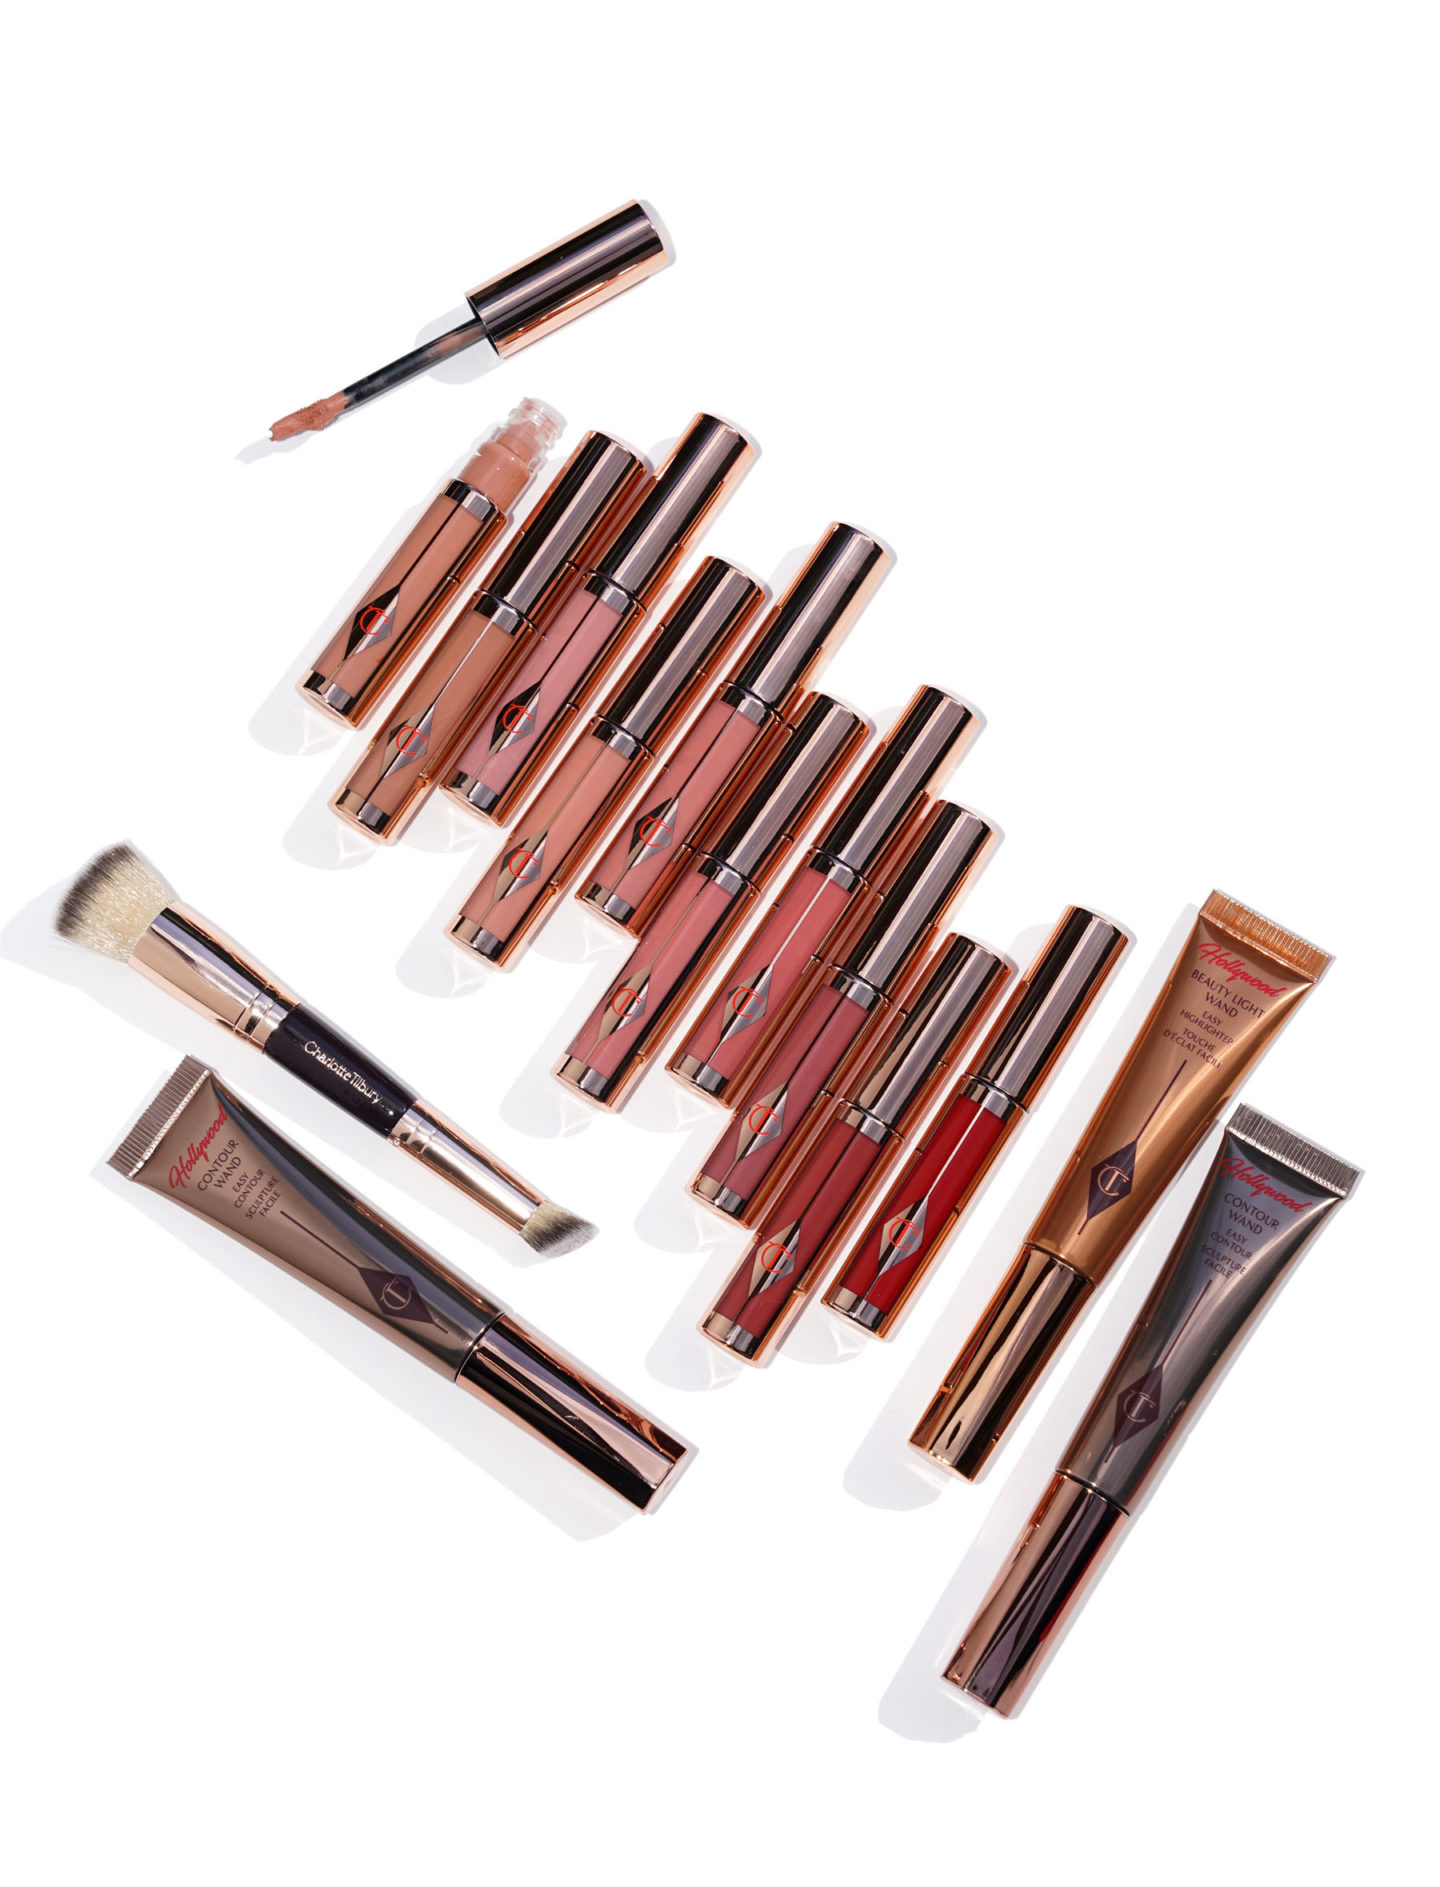 Charlotte Tilbury Hollywood Collection Review | The Beauty Look Book